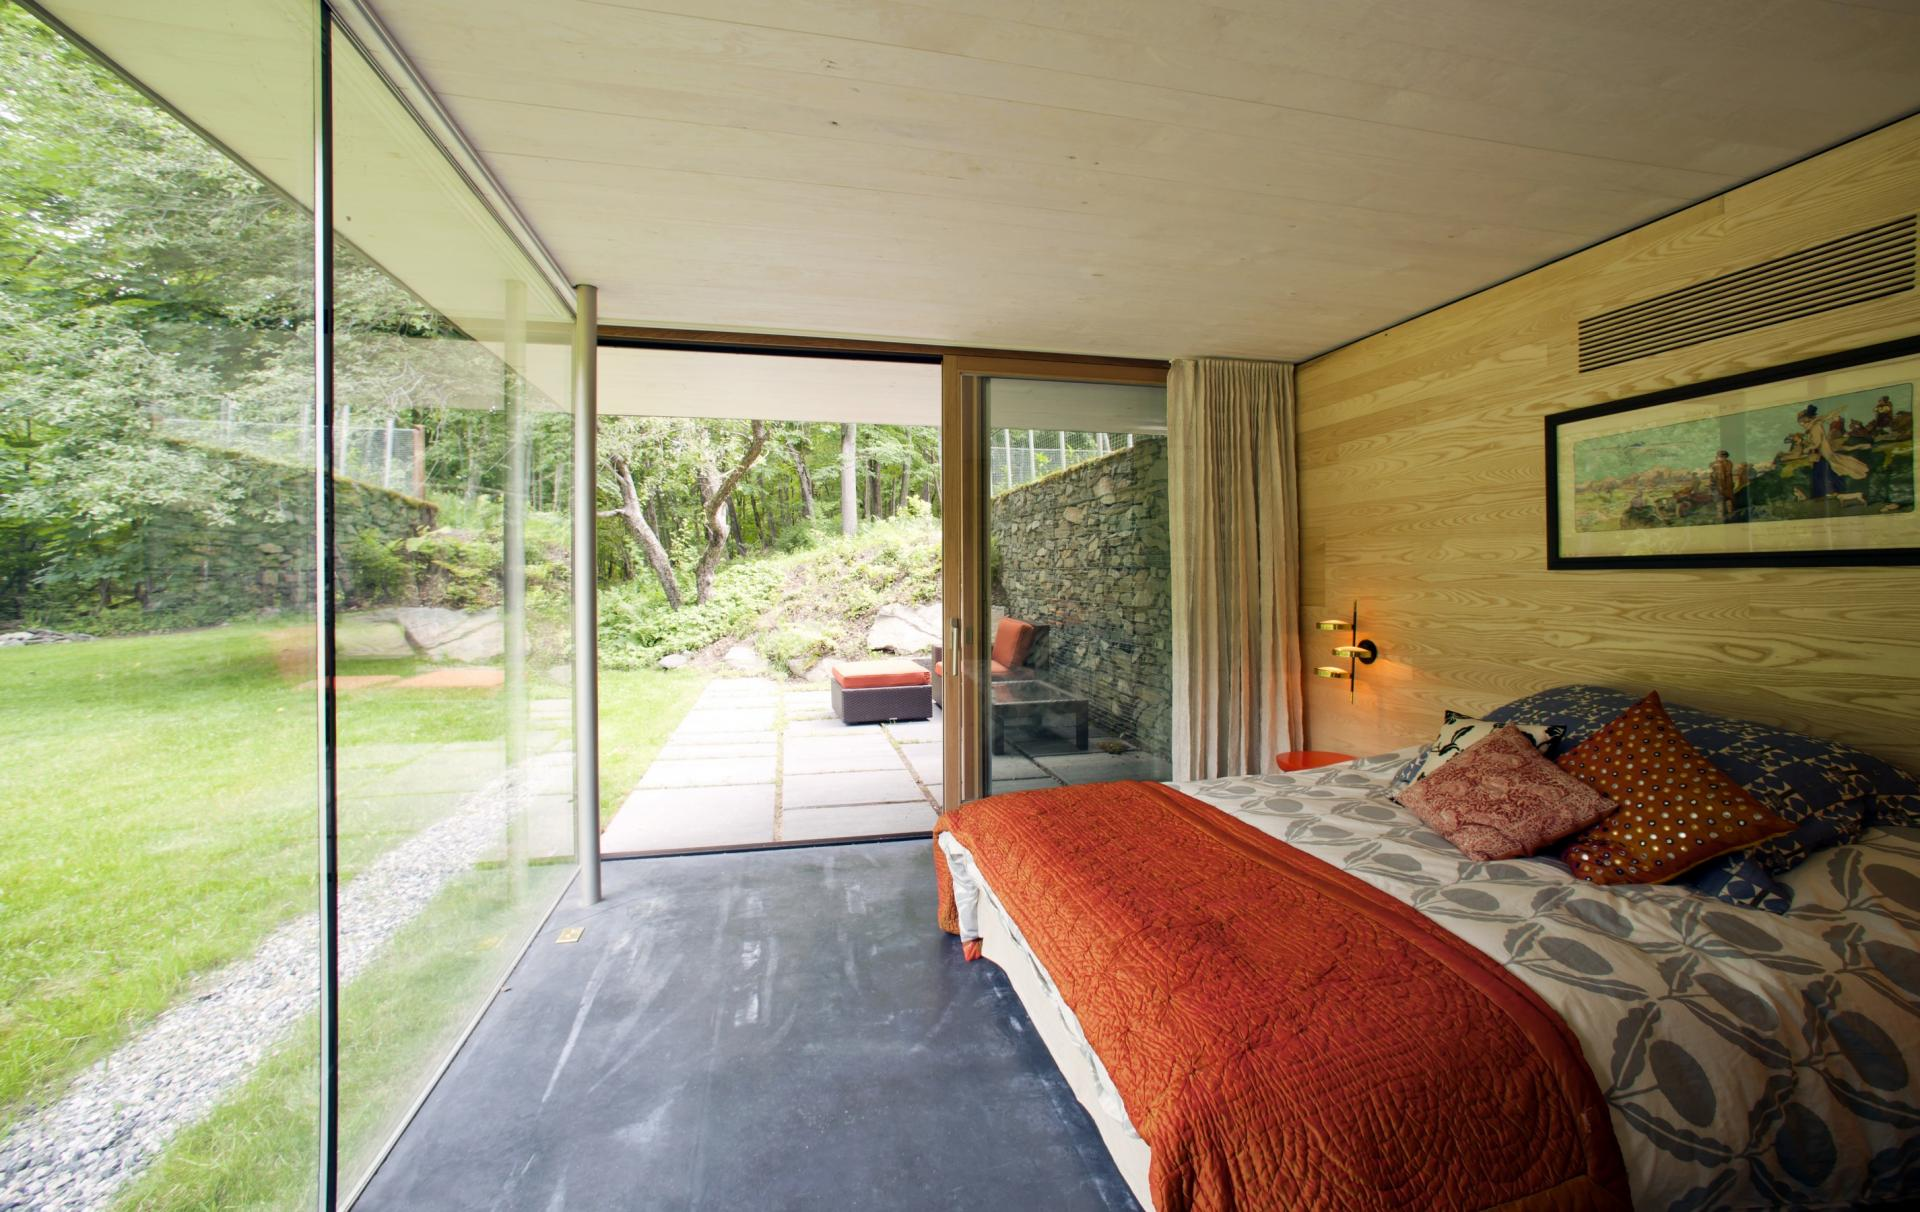 Glass Wall, Bedroom, Rural Retreat in Bantam, Connecticut